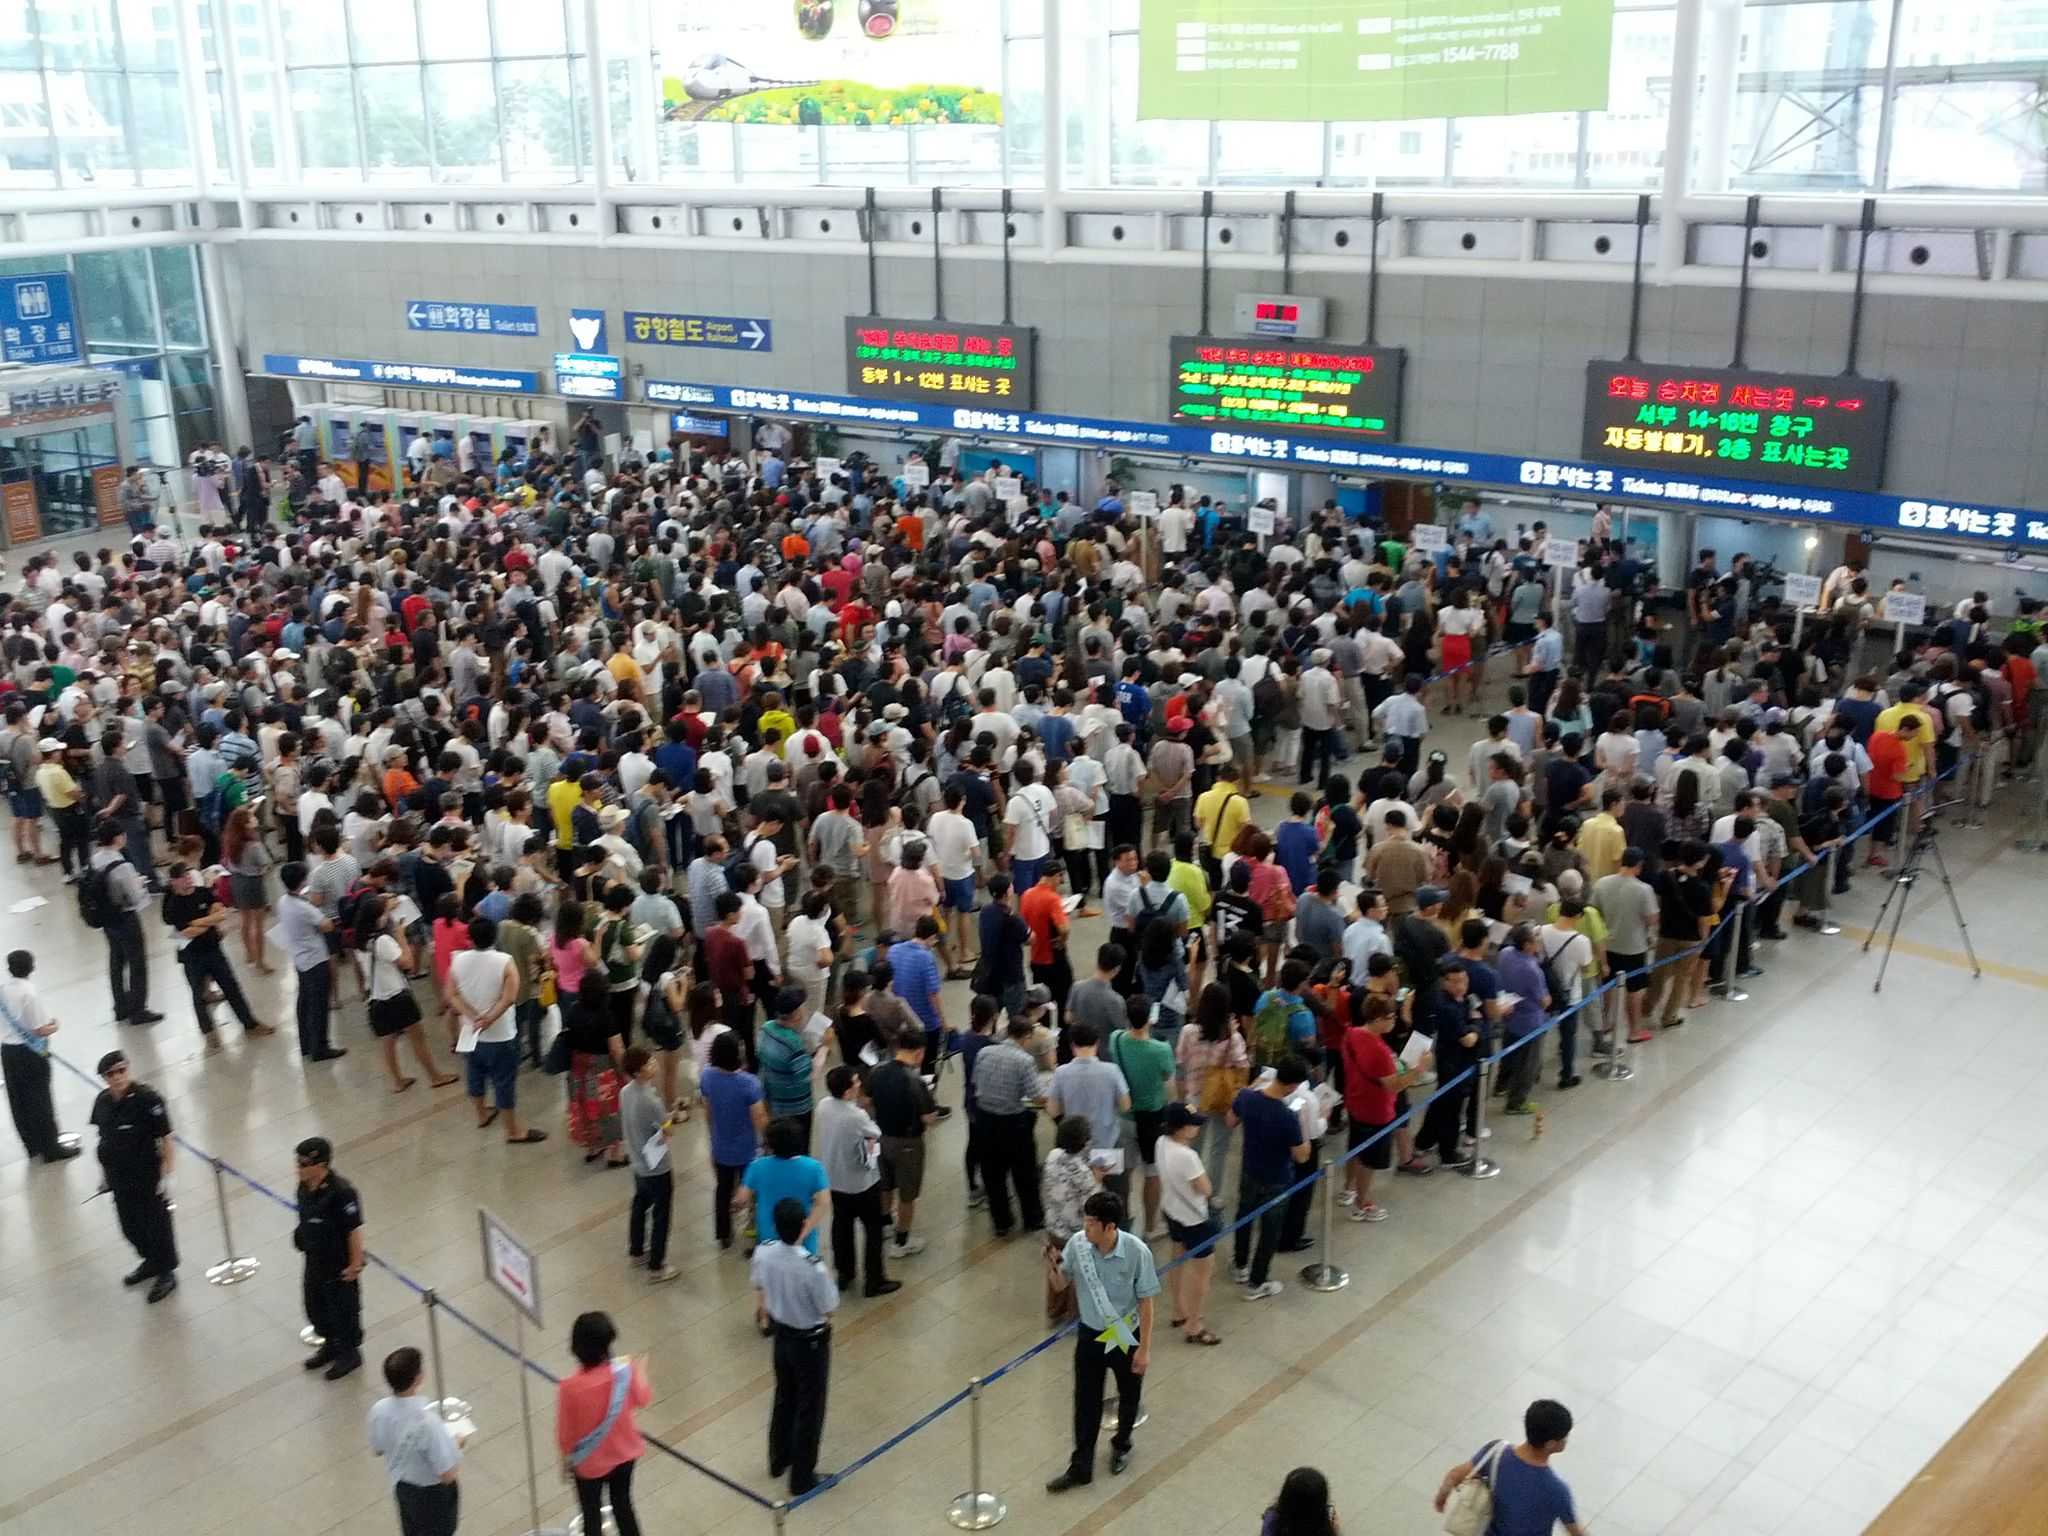 File:Crowd gathered central Seoul railway station to make a